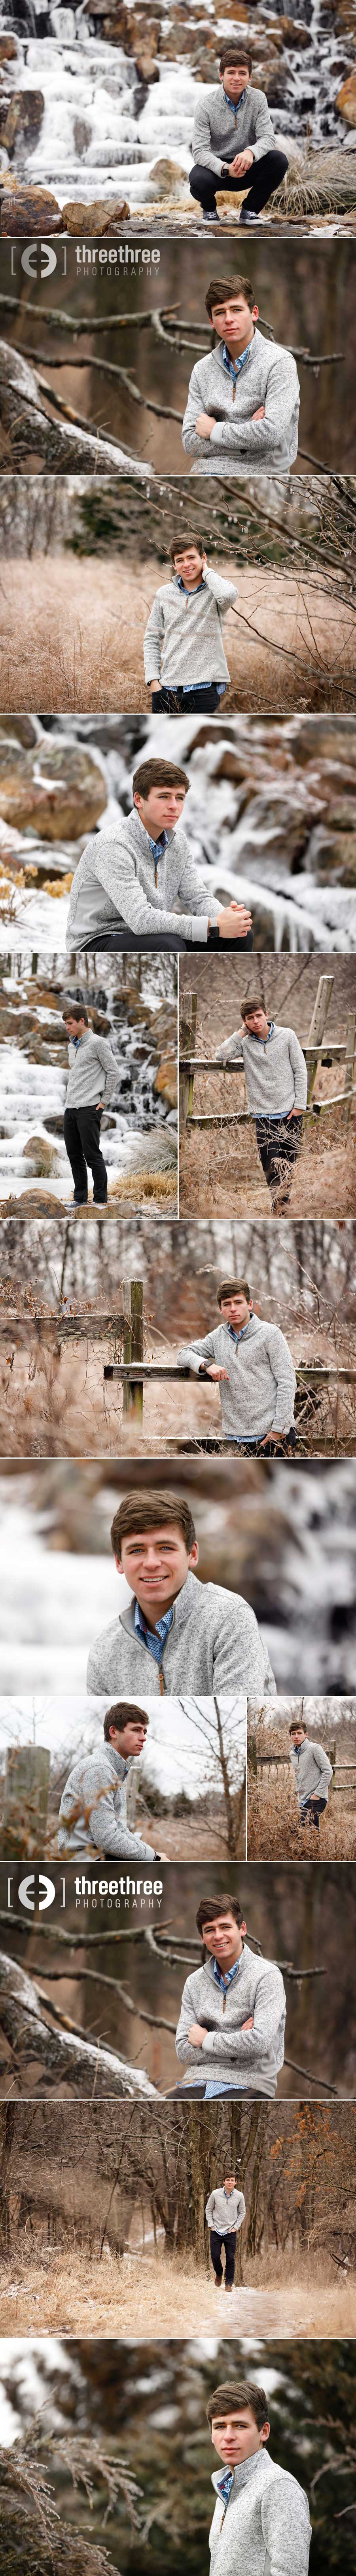 Zach_KC-Senior-Pics.jpg